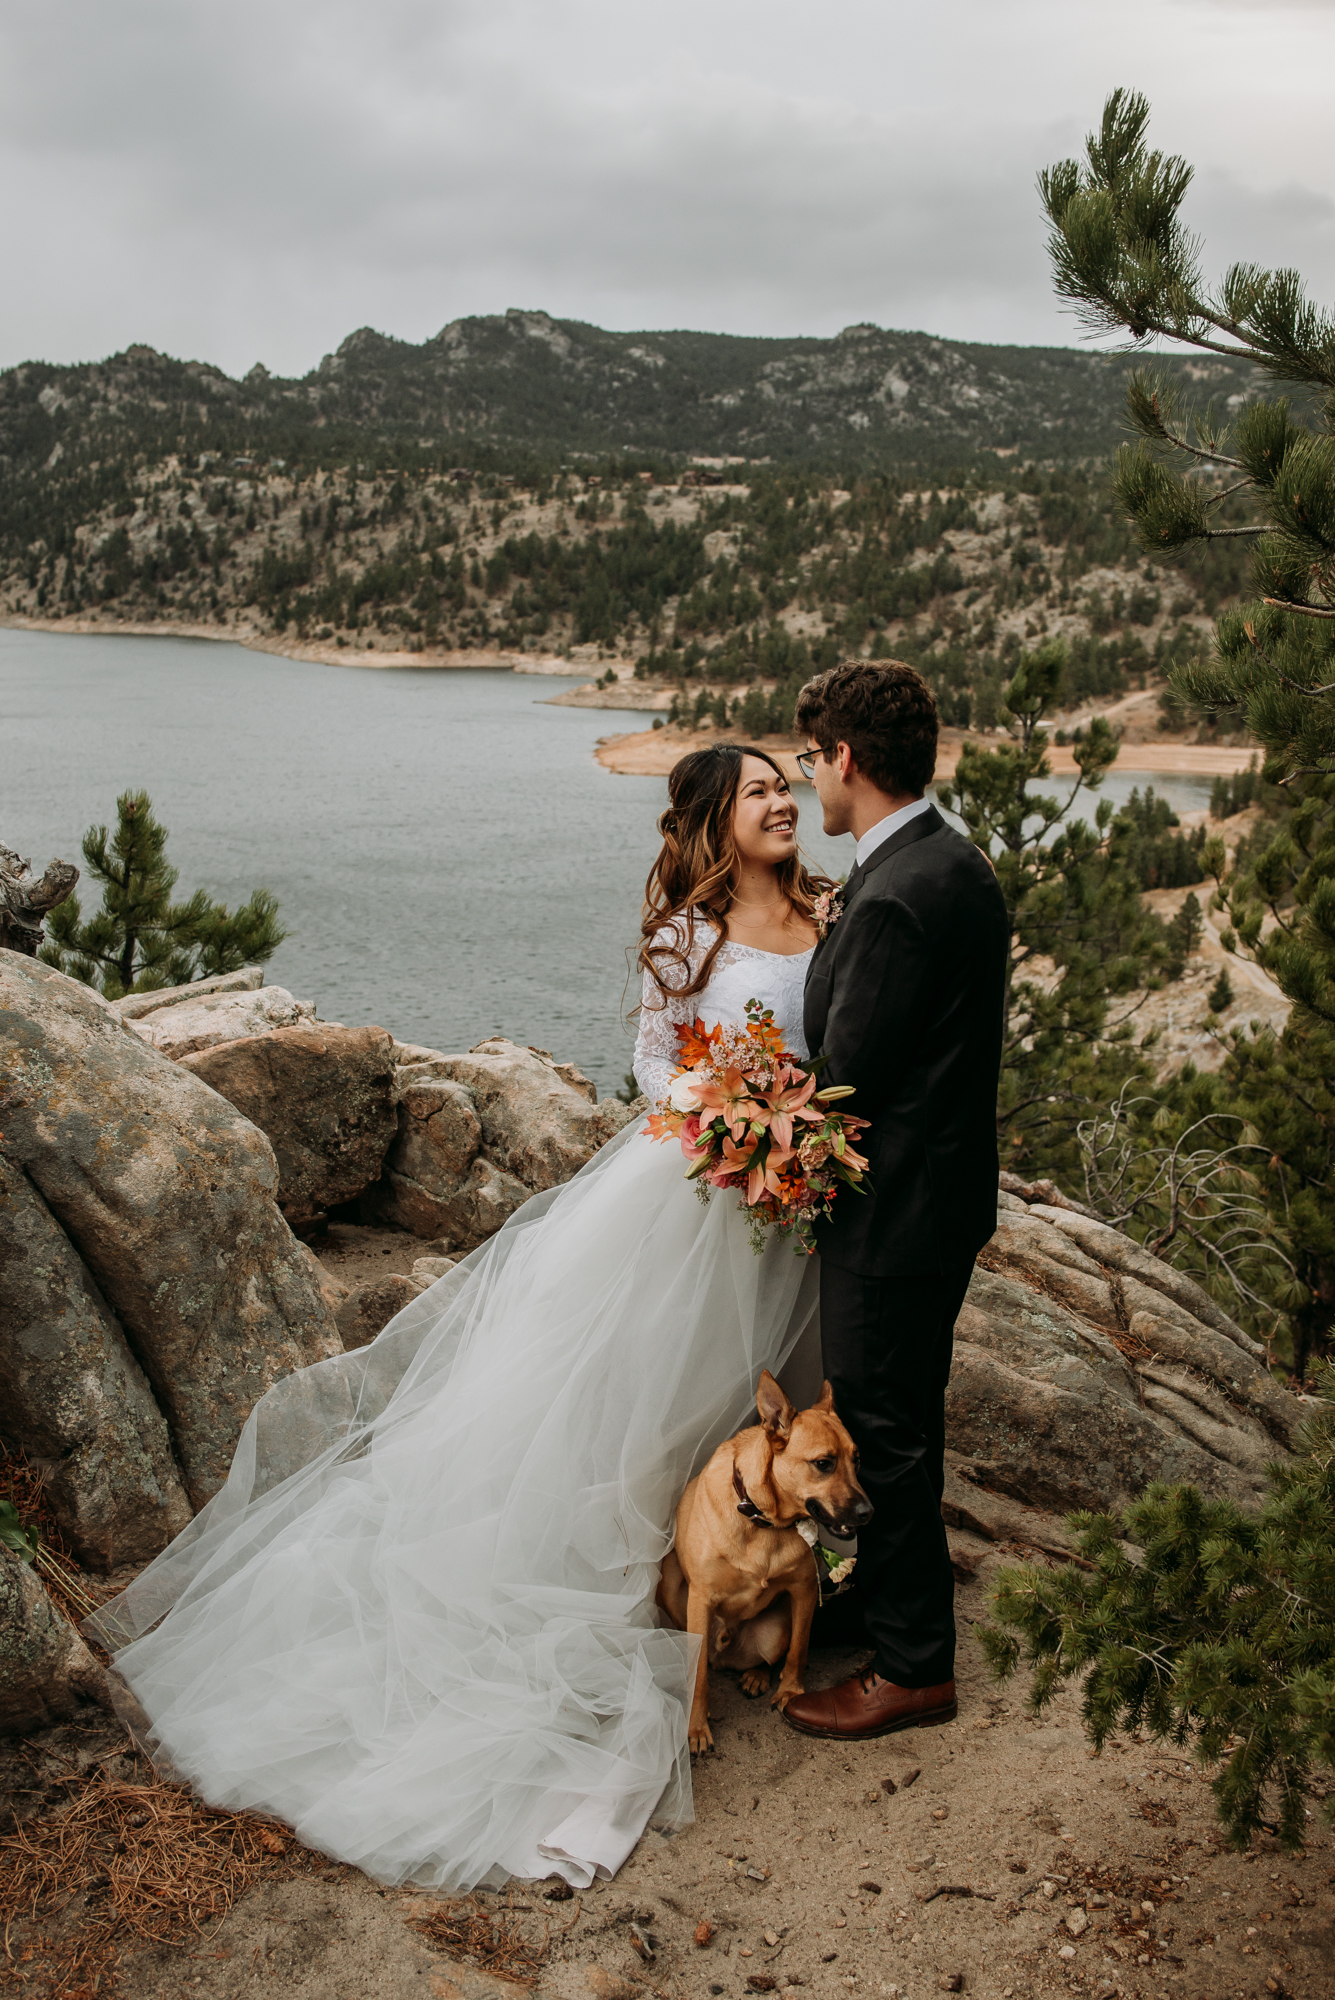 I knew this epic overlook in the Colorado Mountains would be the perfect spot for wedding photos.